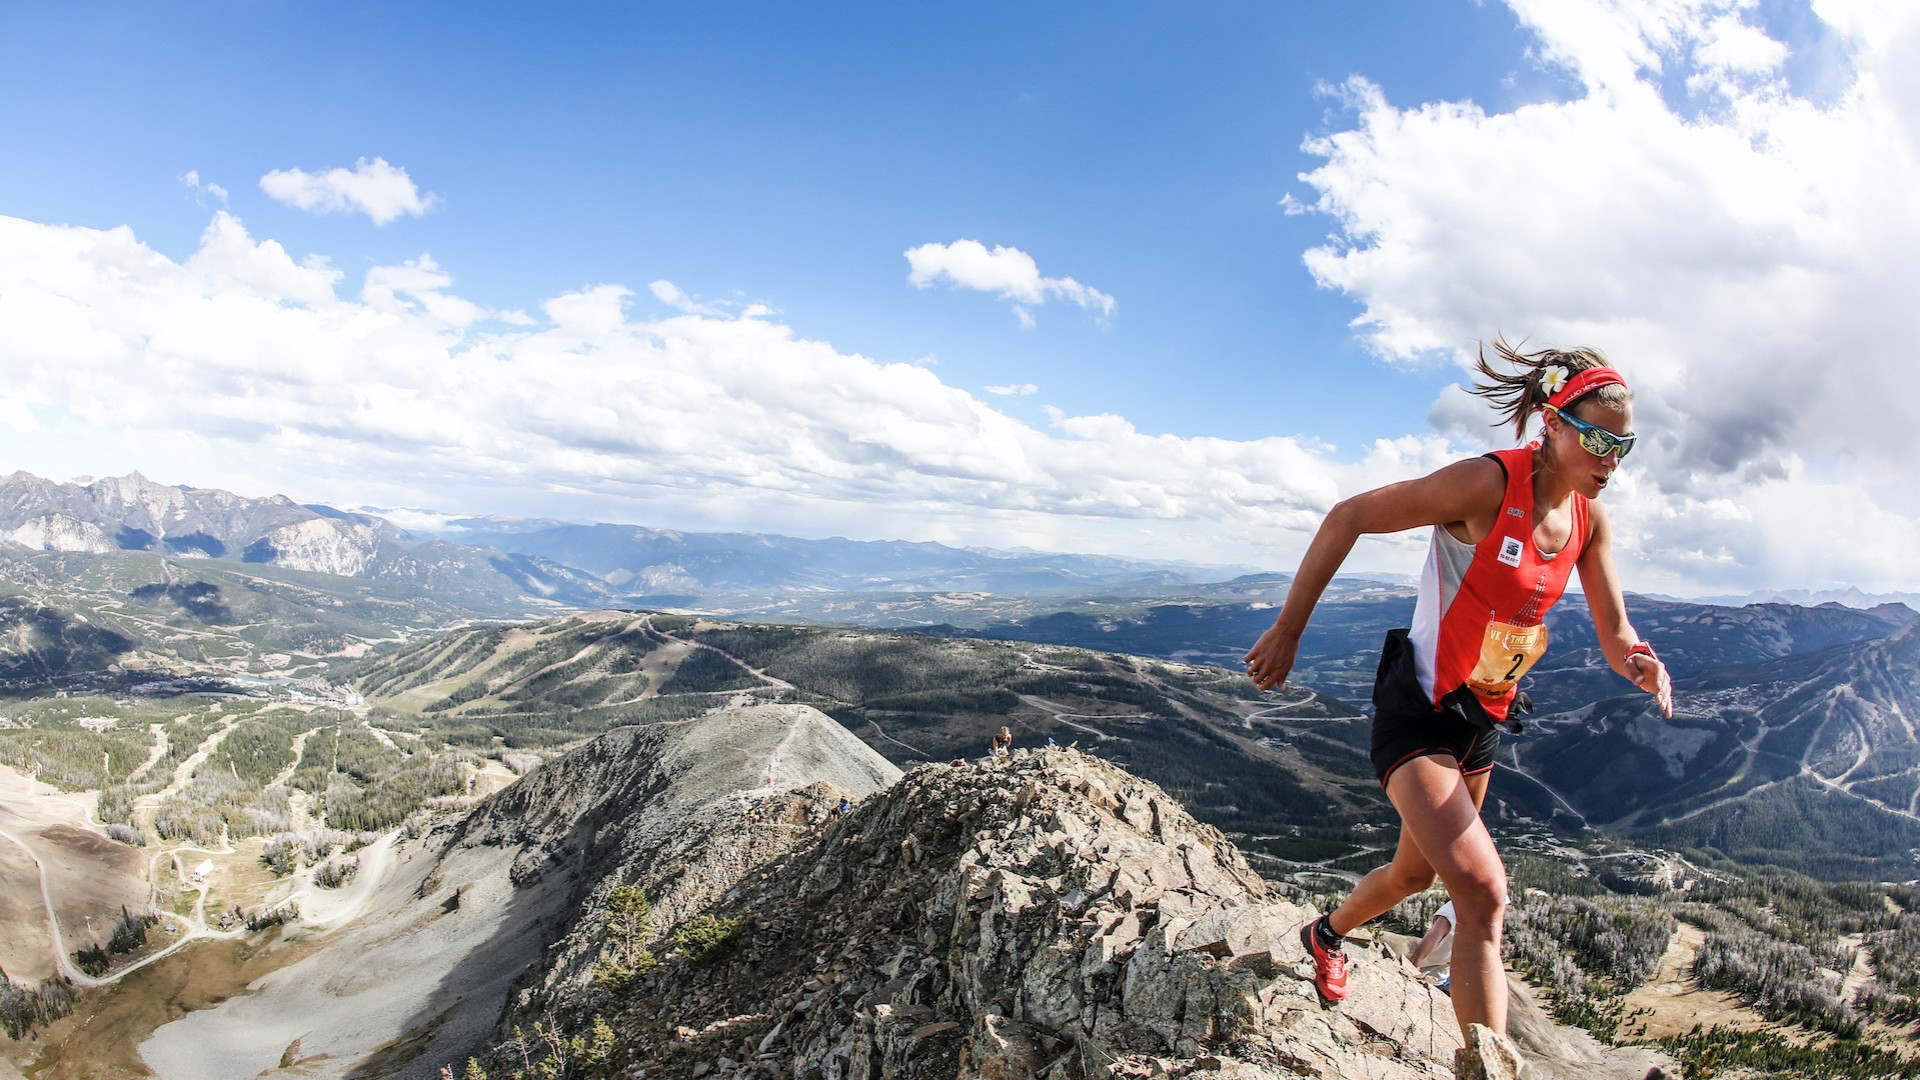 Runner at the top of Run the Rut race in Montana, US